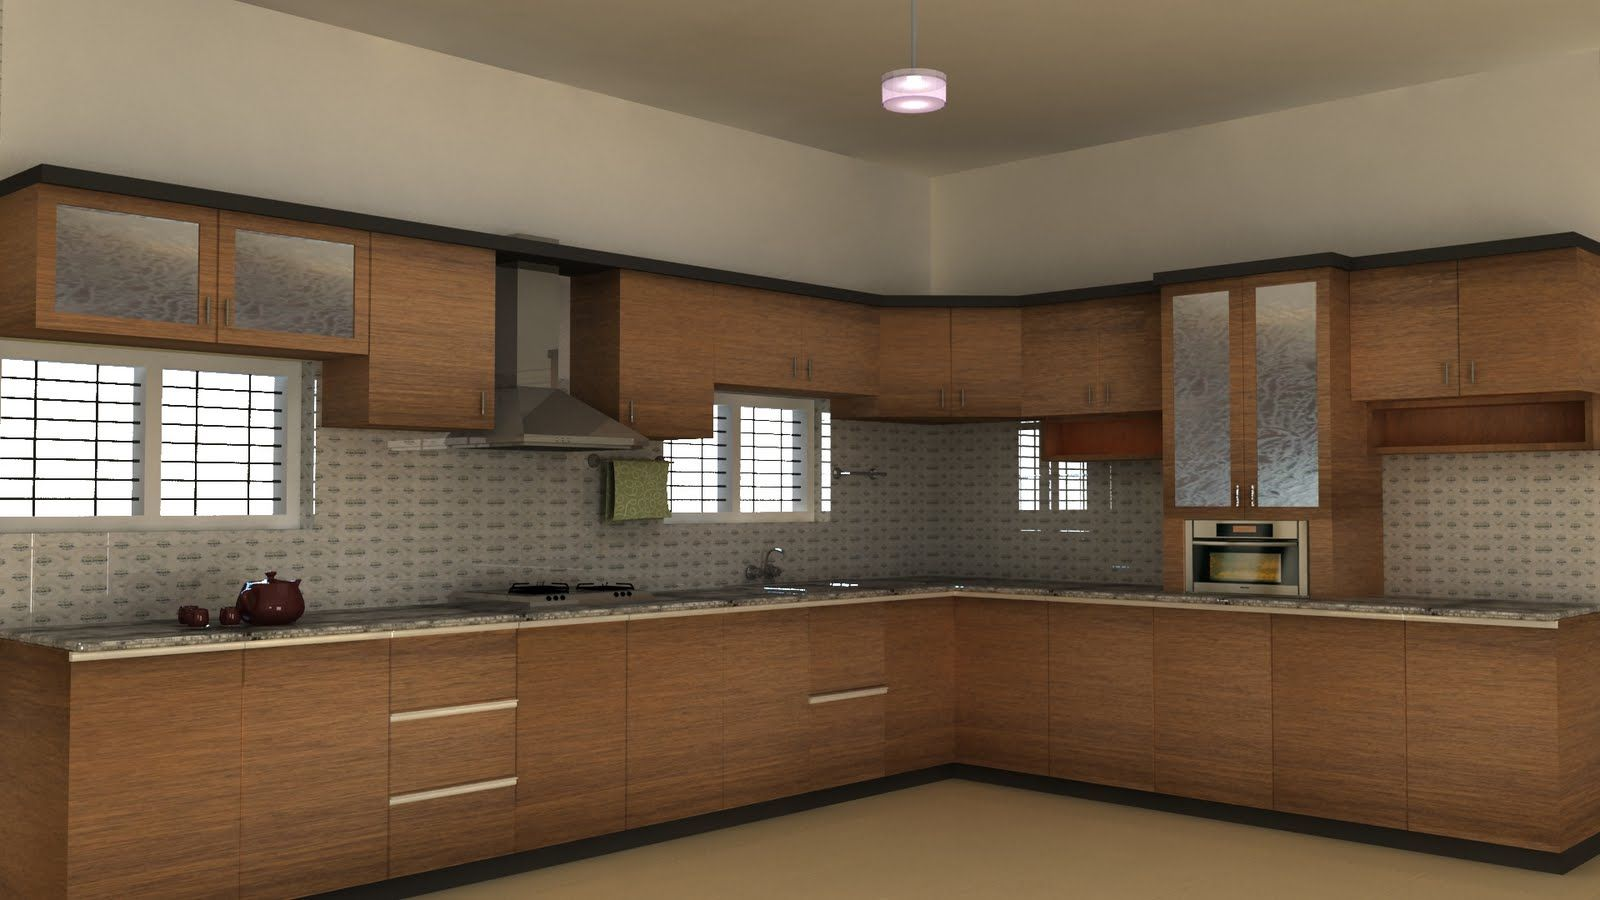 Modern Kerala Home Interior Designs Kitchen Design Ideas Open Kitchen Interior Kitchen Design Open Indian Kitchen Design Ideas